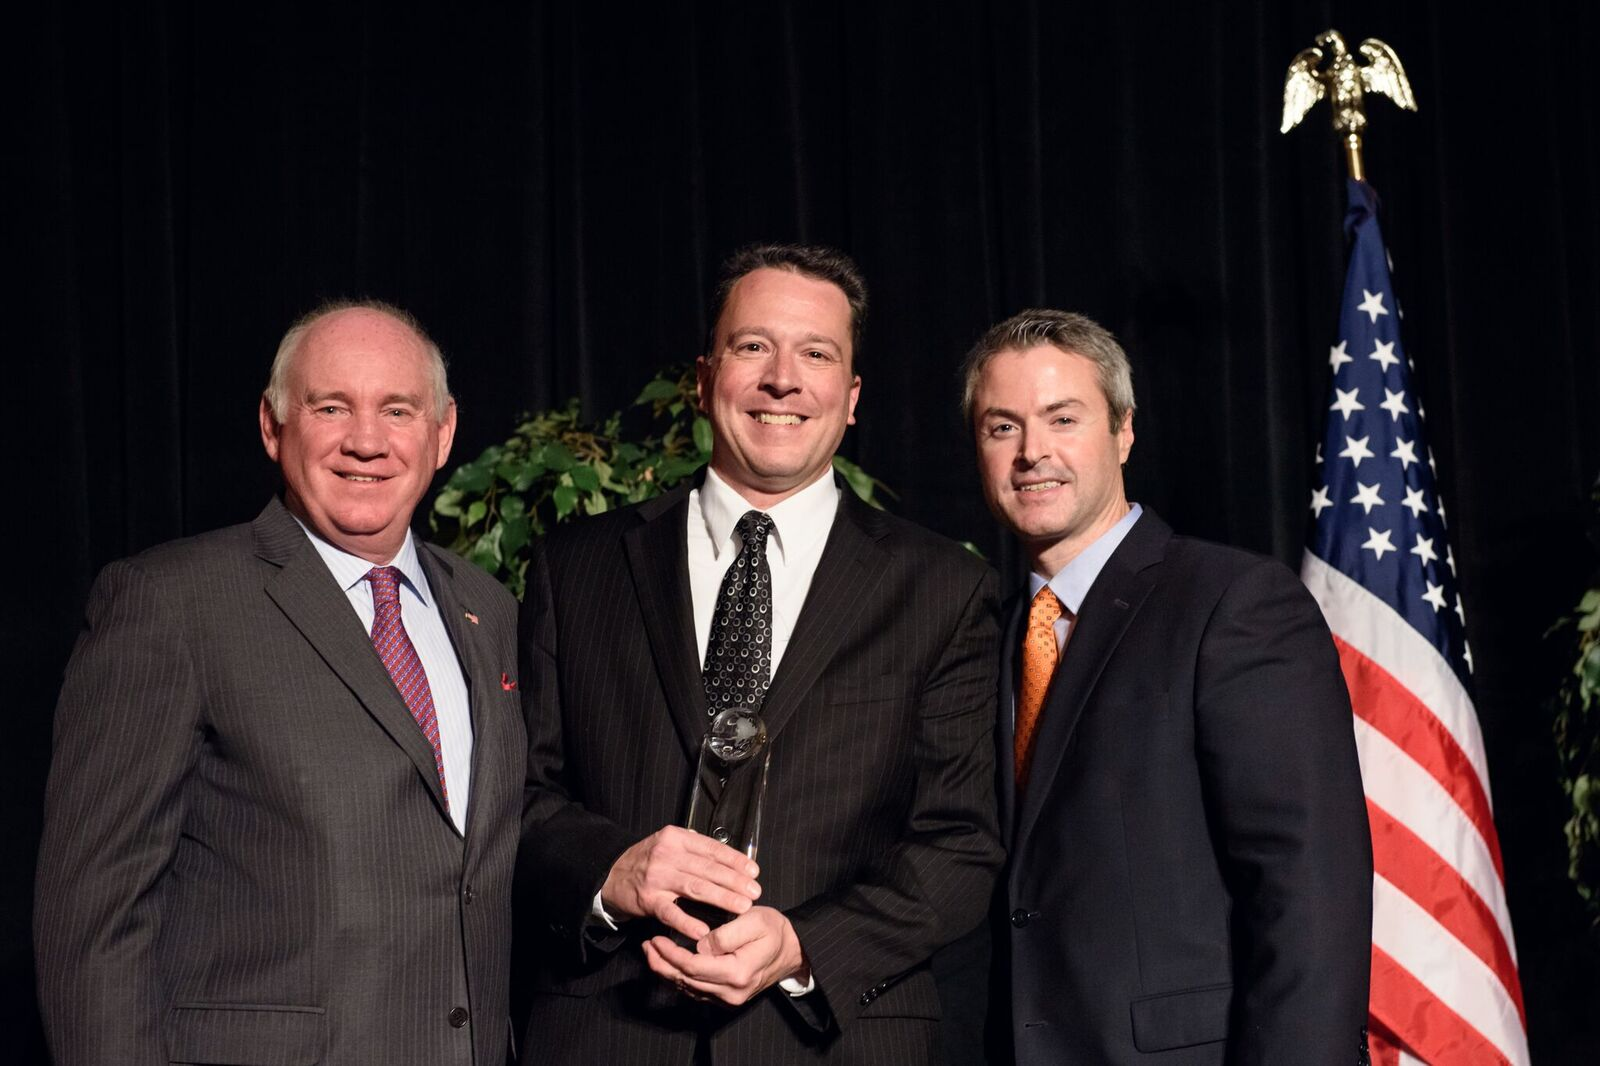 Patrick Bergner (center), CMO of Berkshire Hathaway HomeServices KoenigRubloff Realty Group, accepts the RISMedia Tech Titan Award on behalf of Nancy Nagy, broker/owner of Berkshire Hathaway HomeServices KoenigRubloff Realty Group, with John Featherston (left), president and CEO of RISMedia, and David Mele (right), president of Homes.com, sponsor of the award.